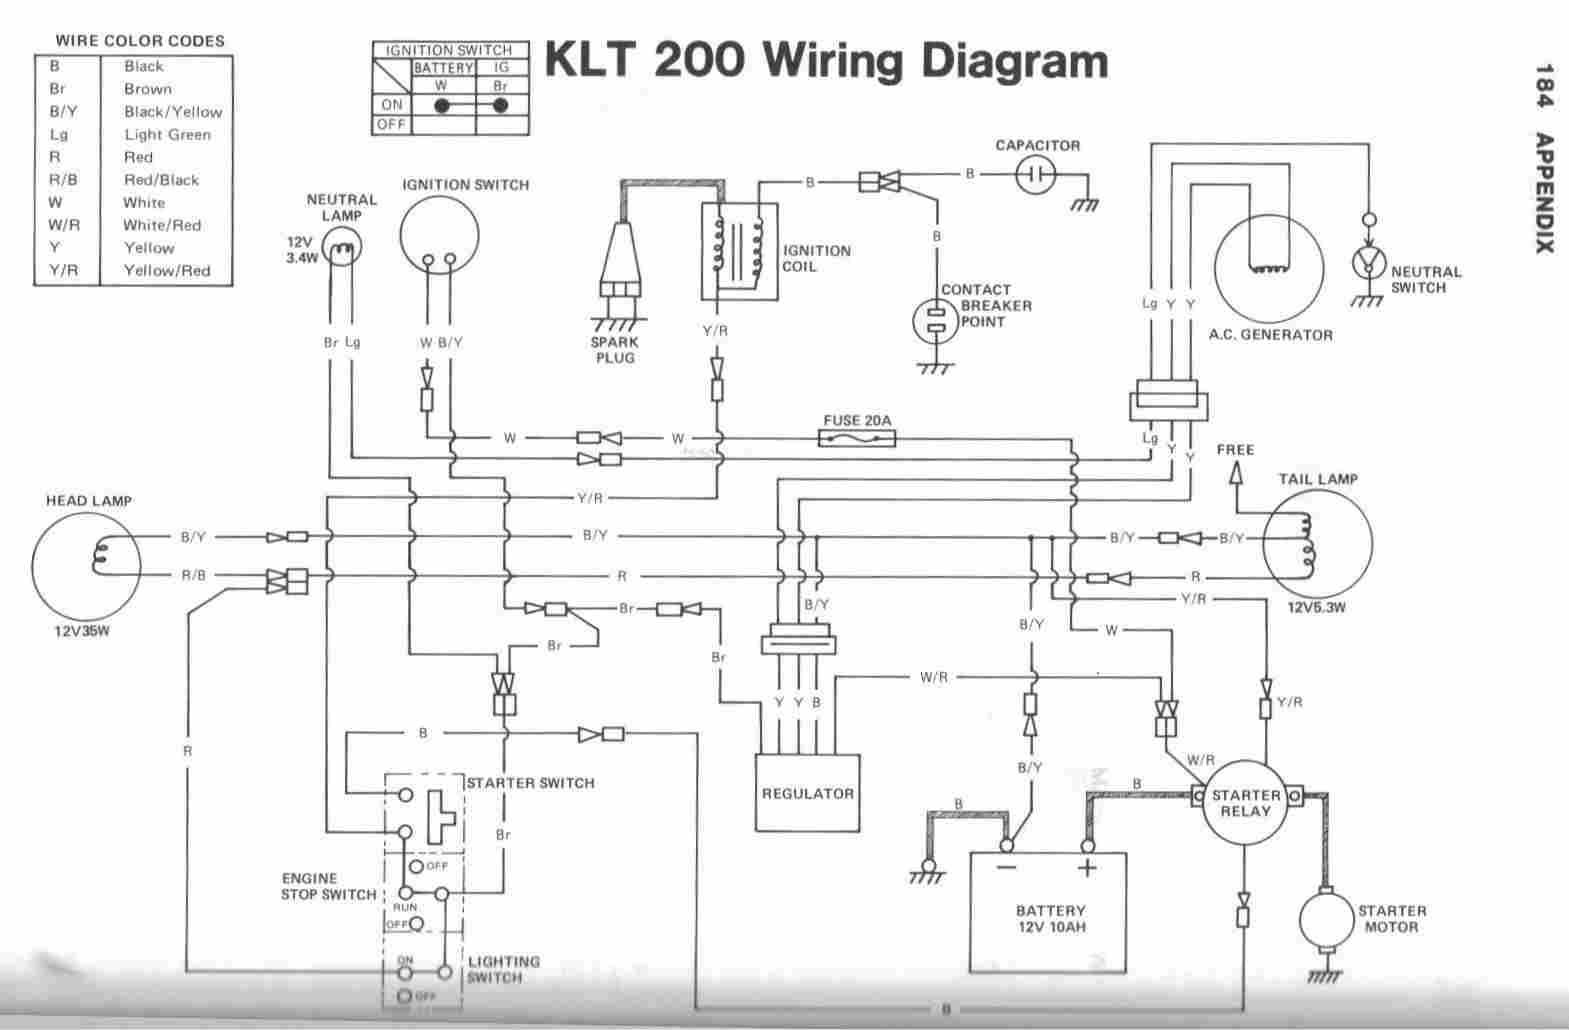 household wiring diagrams single phase residential electrical wiring diagrams pdf easy routing ... household wiring diagrams pdf